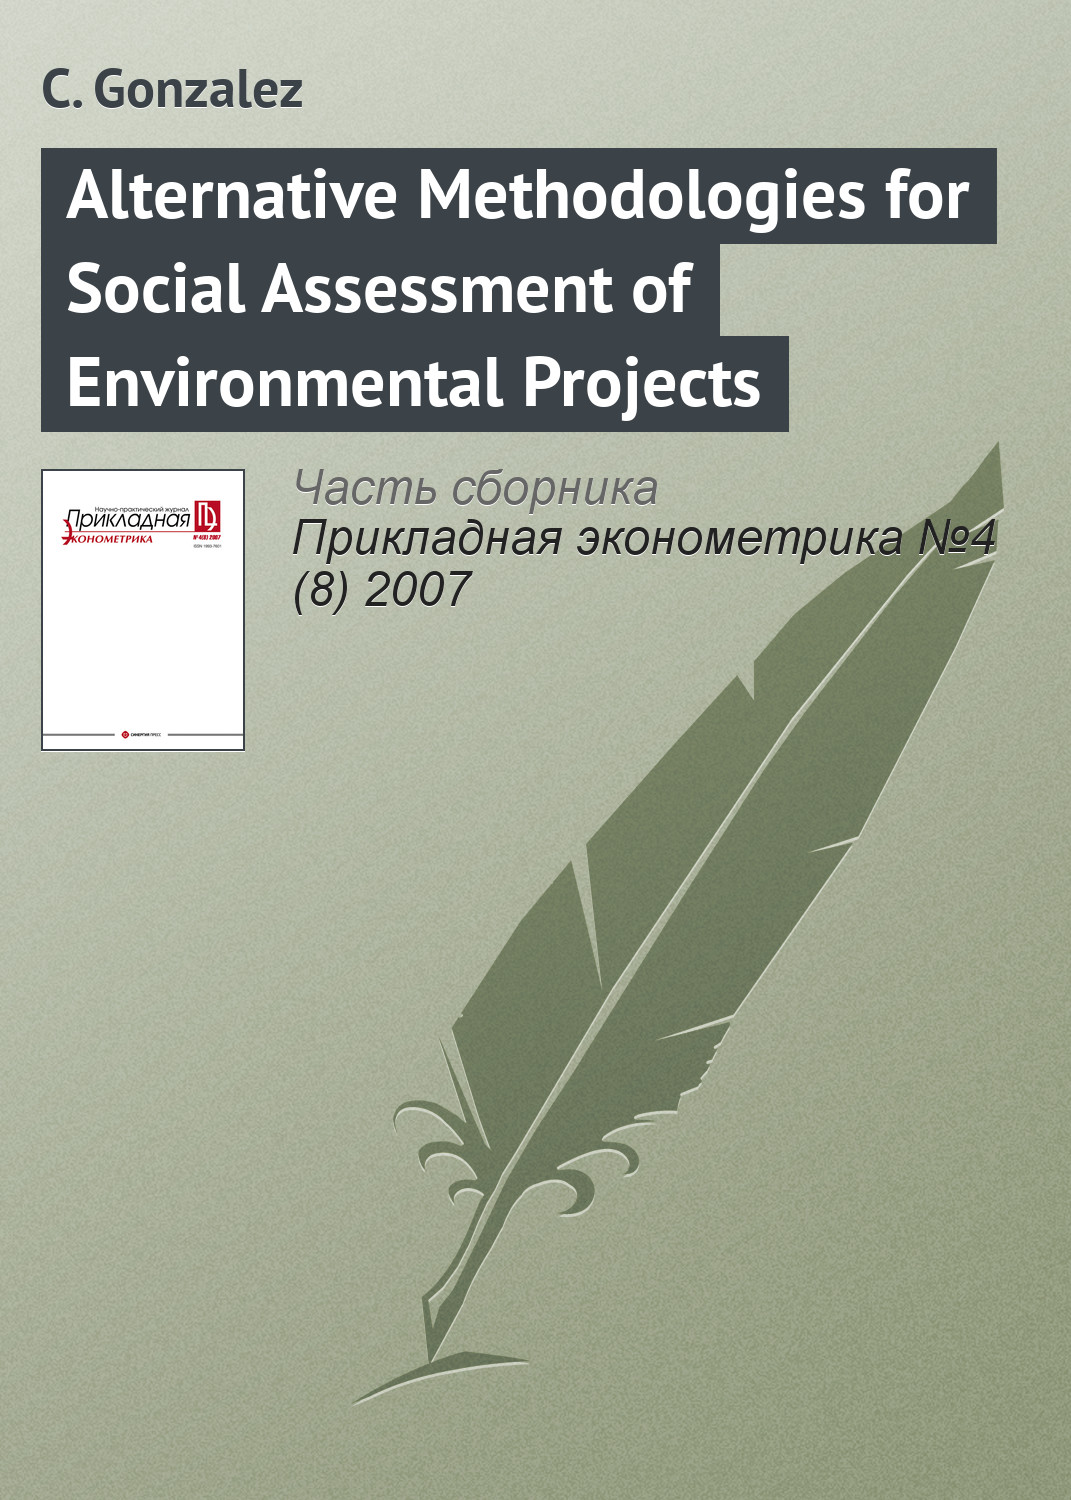 C. Gonzalez Alternative Methodologies for Social Assessment of Environmental Projects c gonzalez alternative methodologies for social assessment of environmental projects